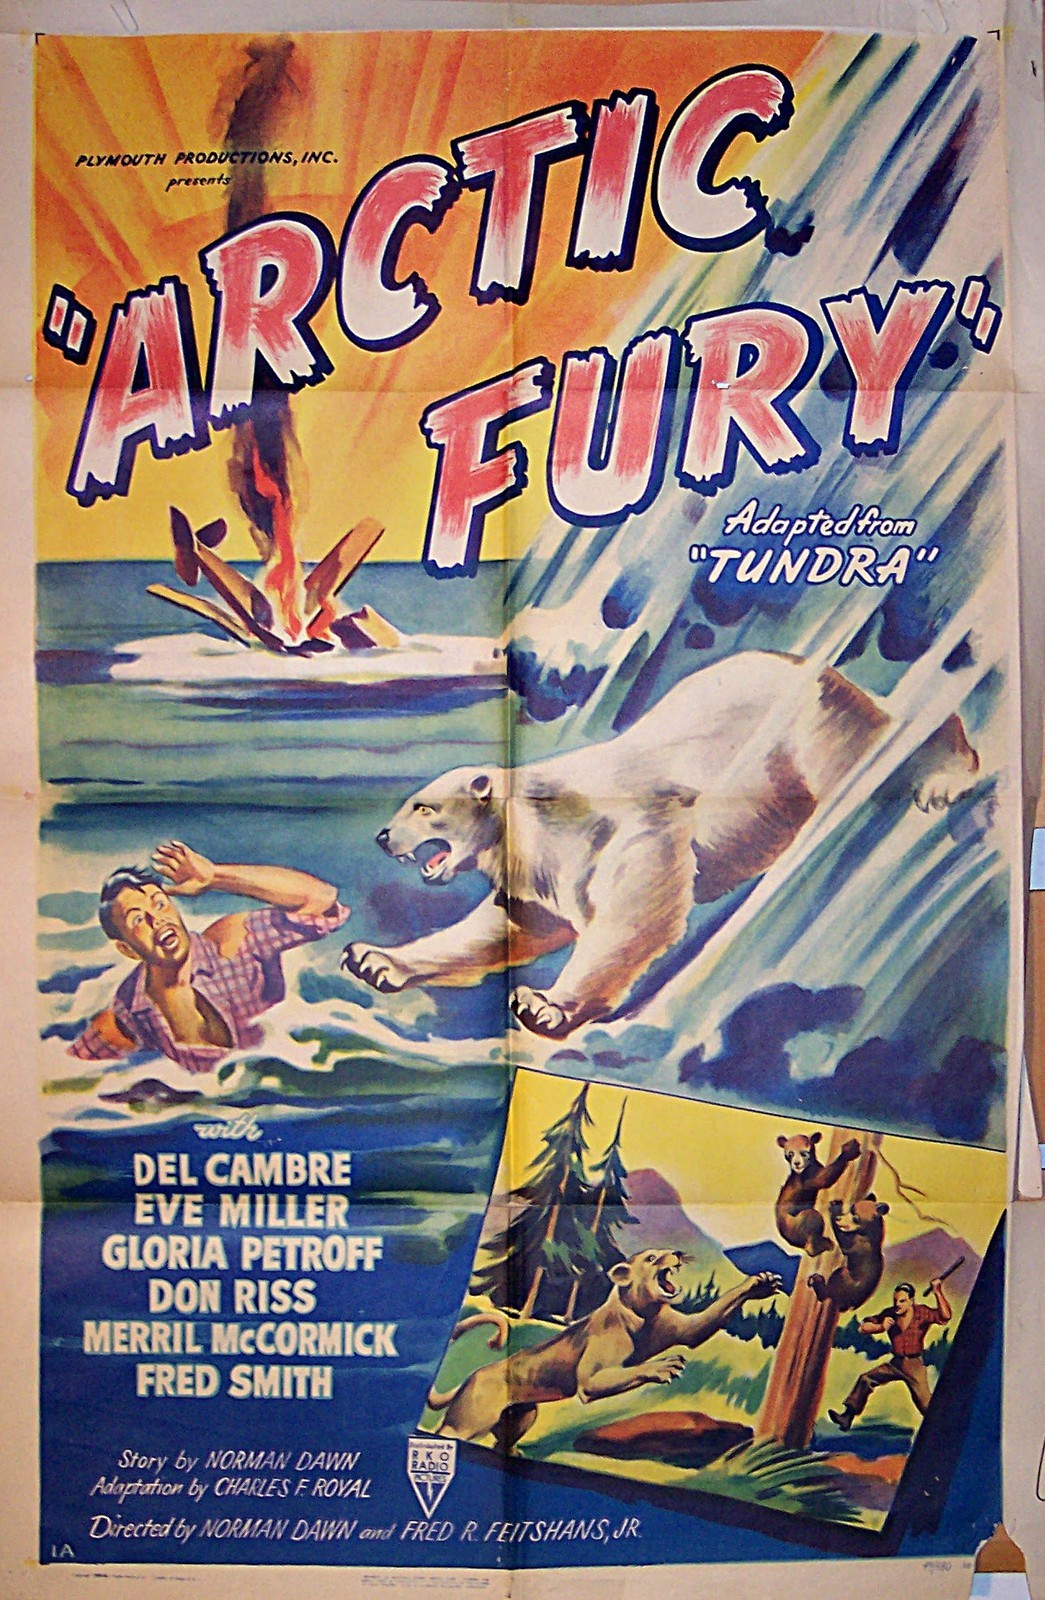 Pictured is a US one-sheet promotional poster for the 1949 Norman Dawn film Arctic Fury starring Alfred Delcambre.